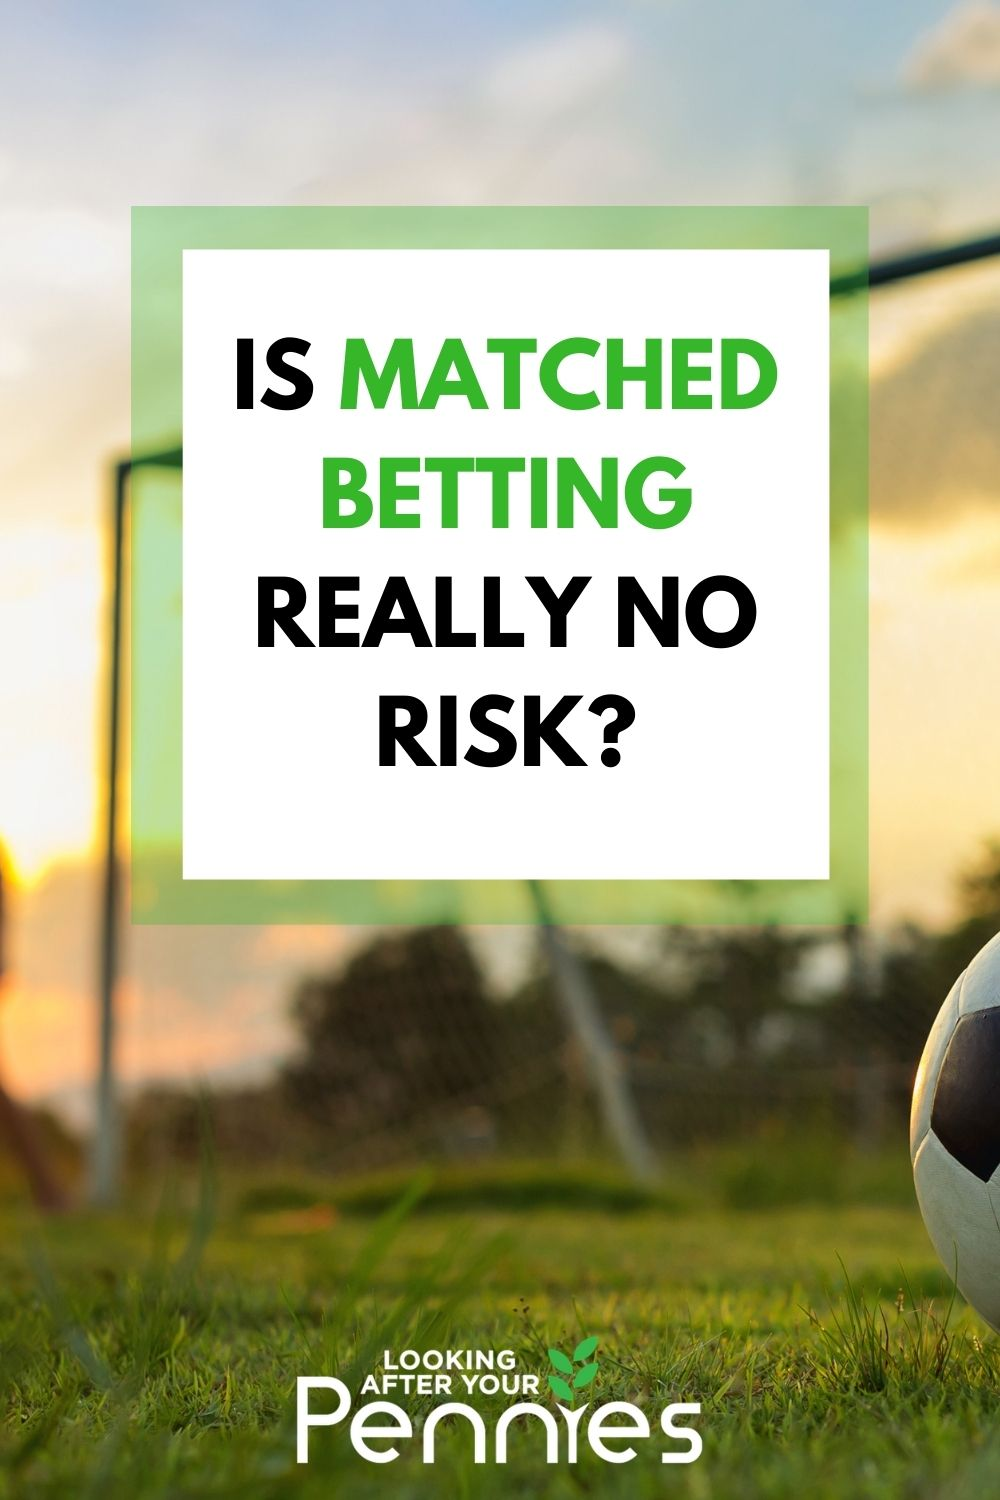 is matched betting really no risk